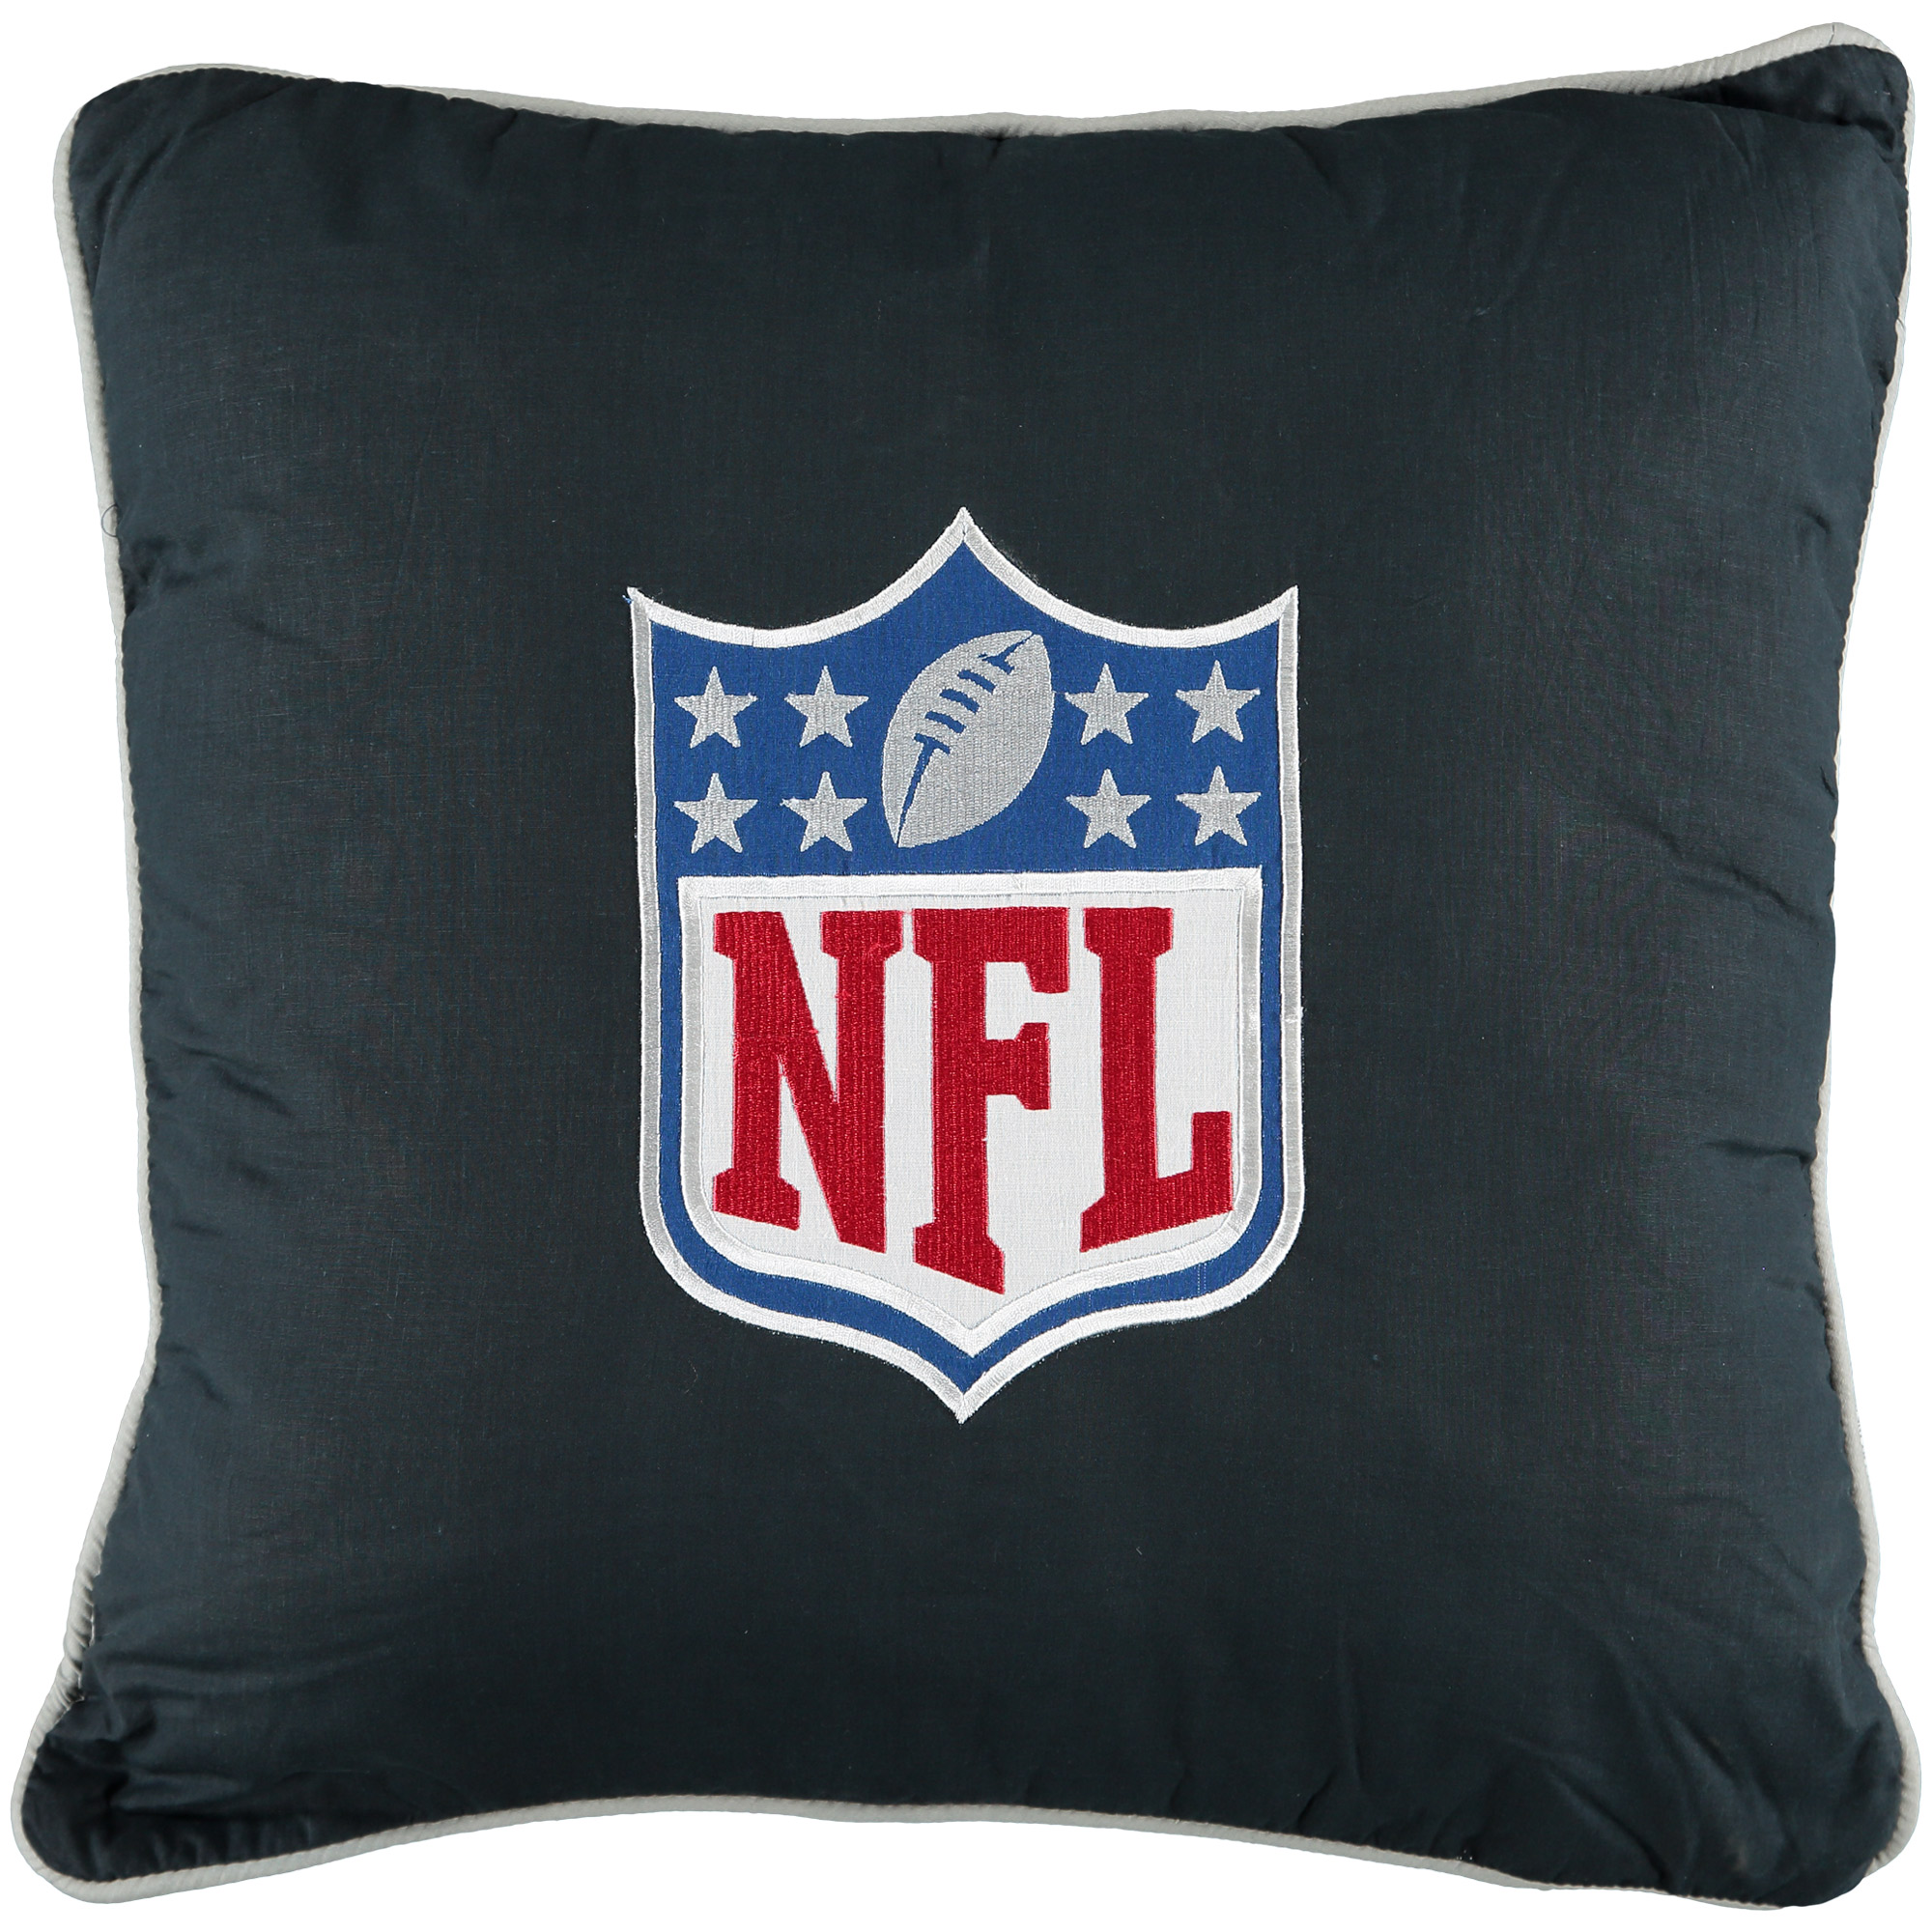 NFL The Northwest Company Shield Pillow - No Size